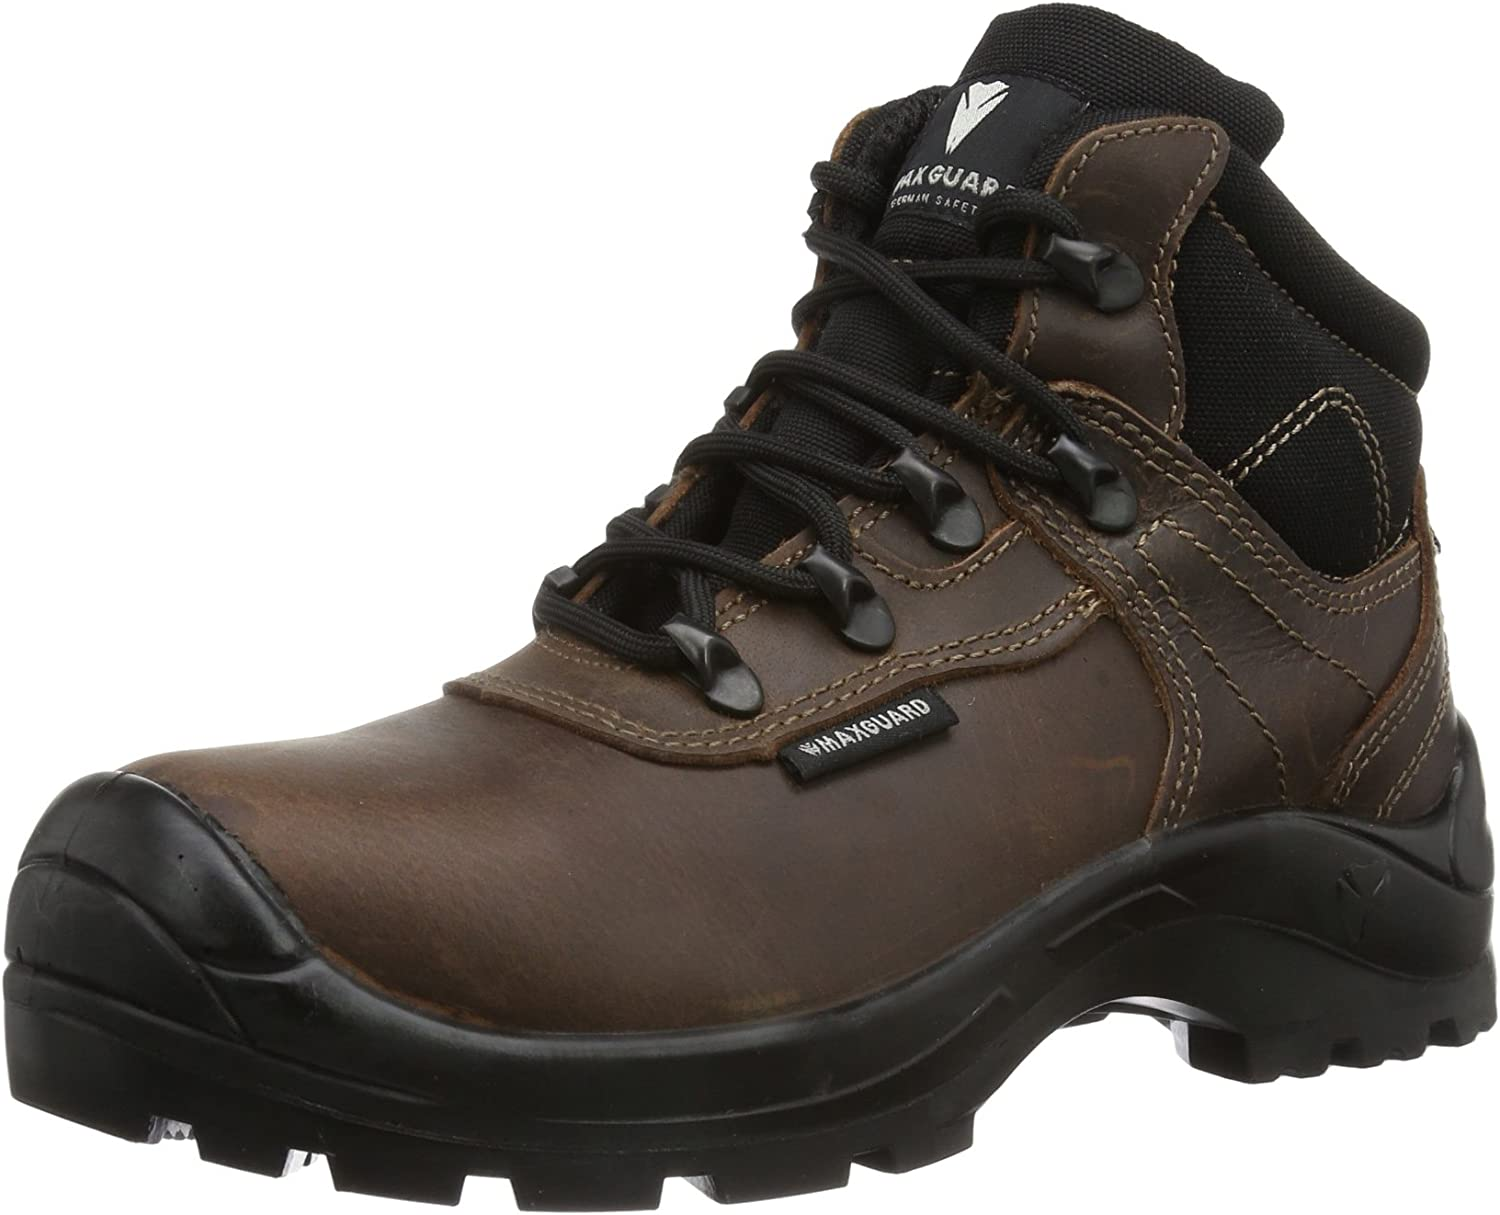 Maxguard Clint, Unisex Adults' Safety shoes Brown